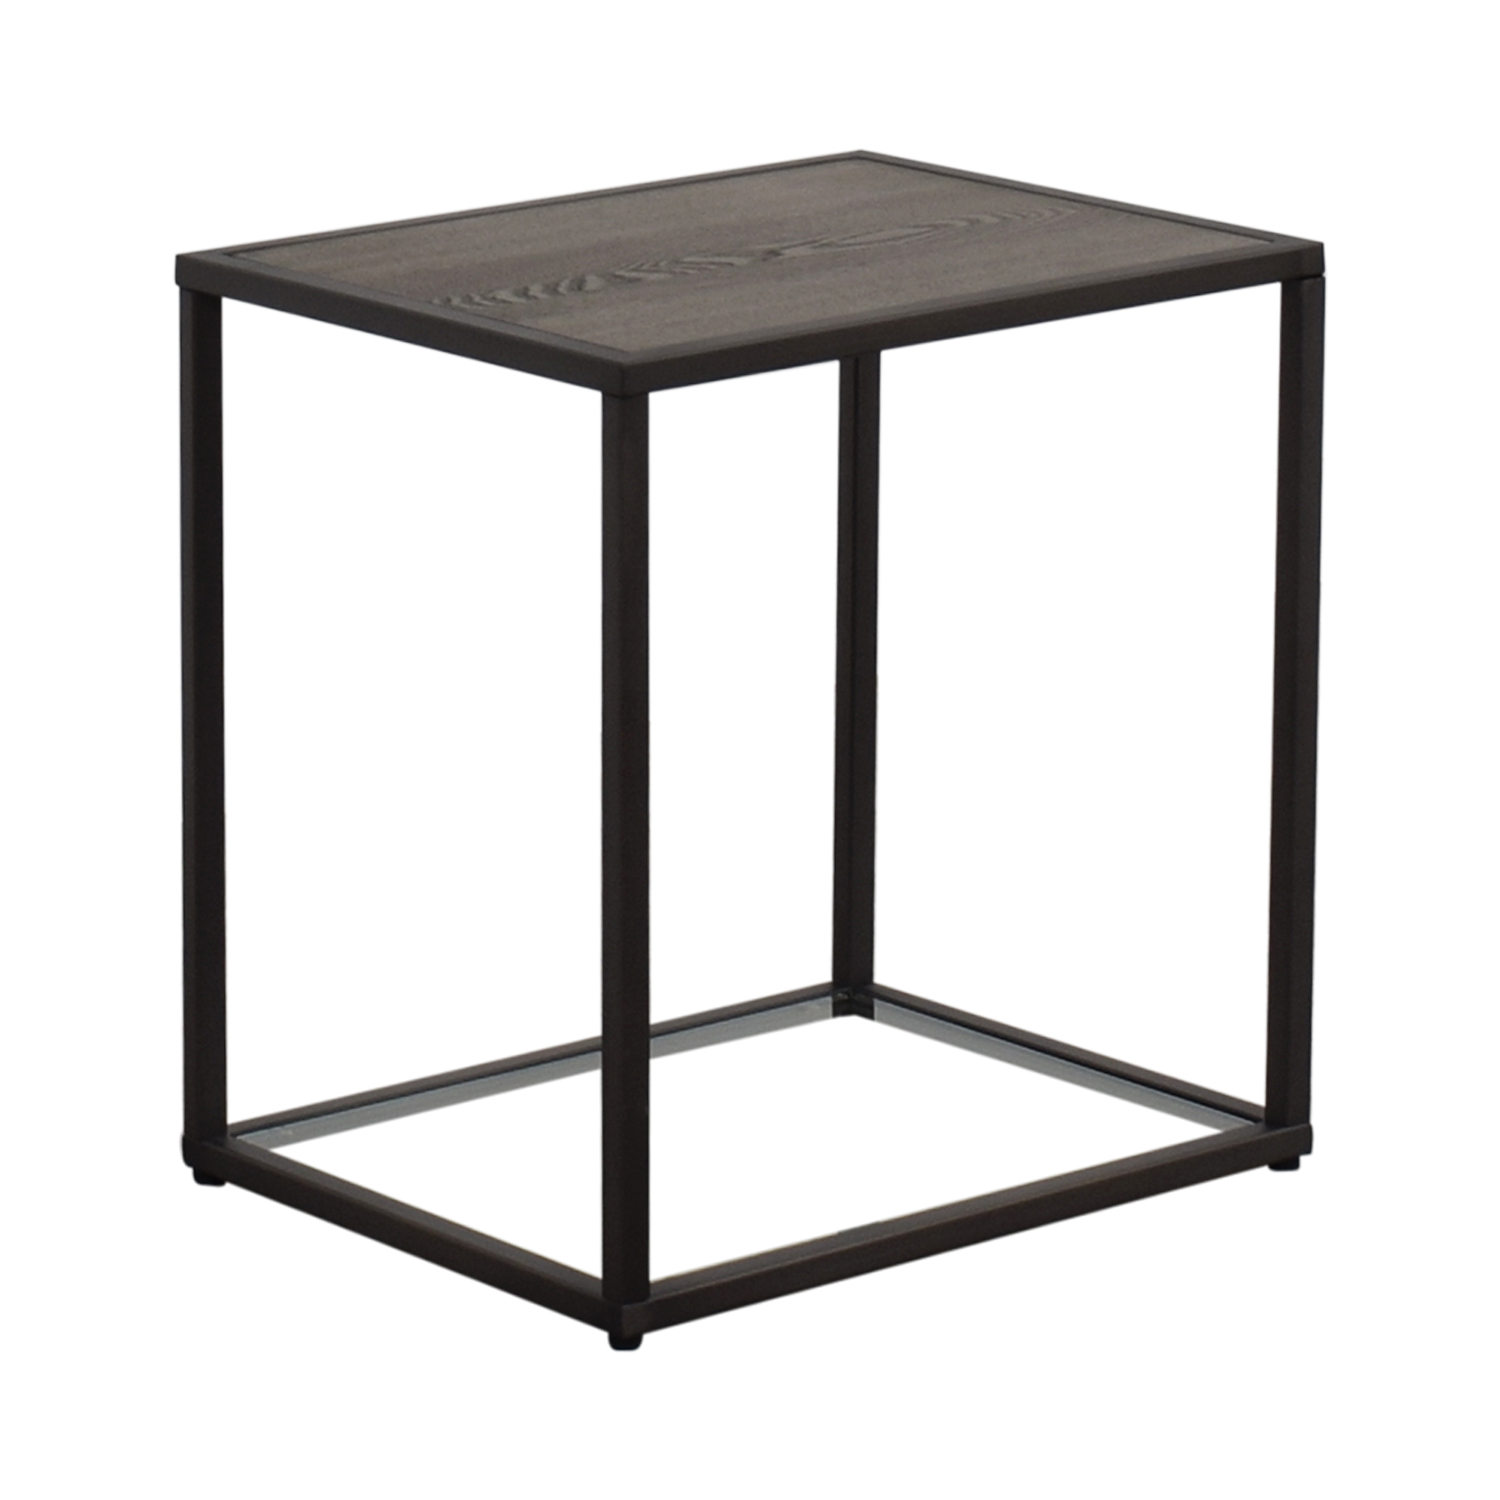 61 off crate barrel crate barrel switch side table tables